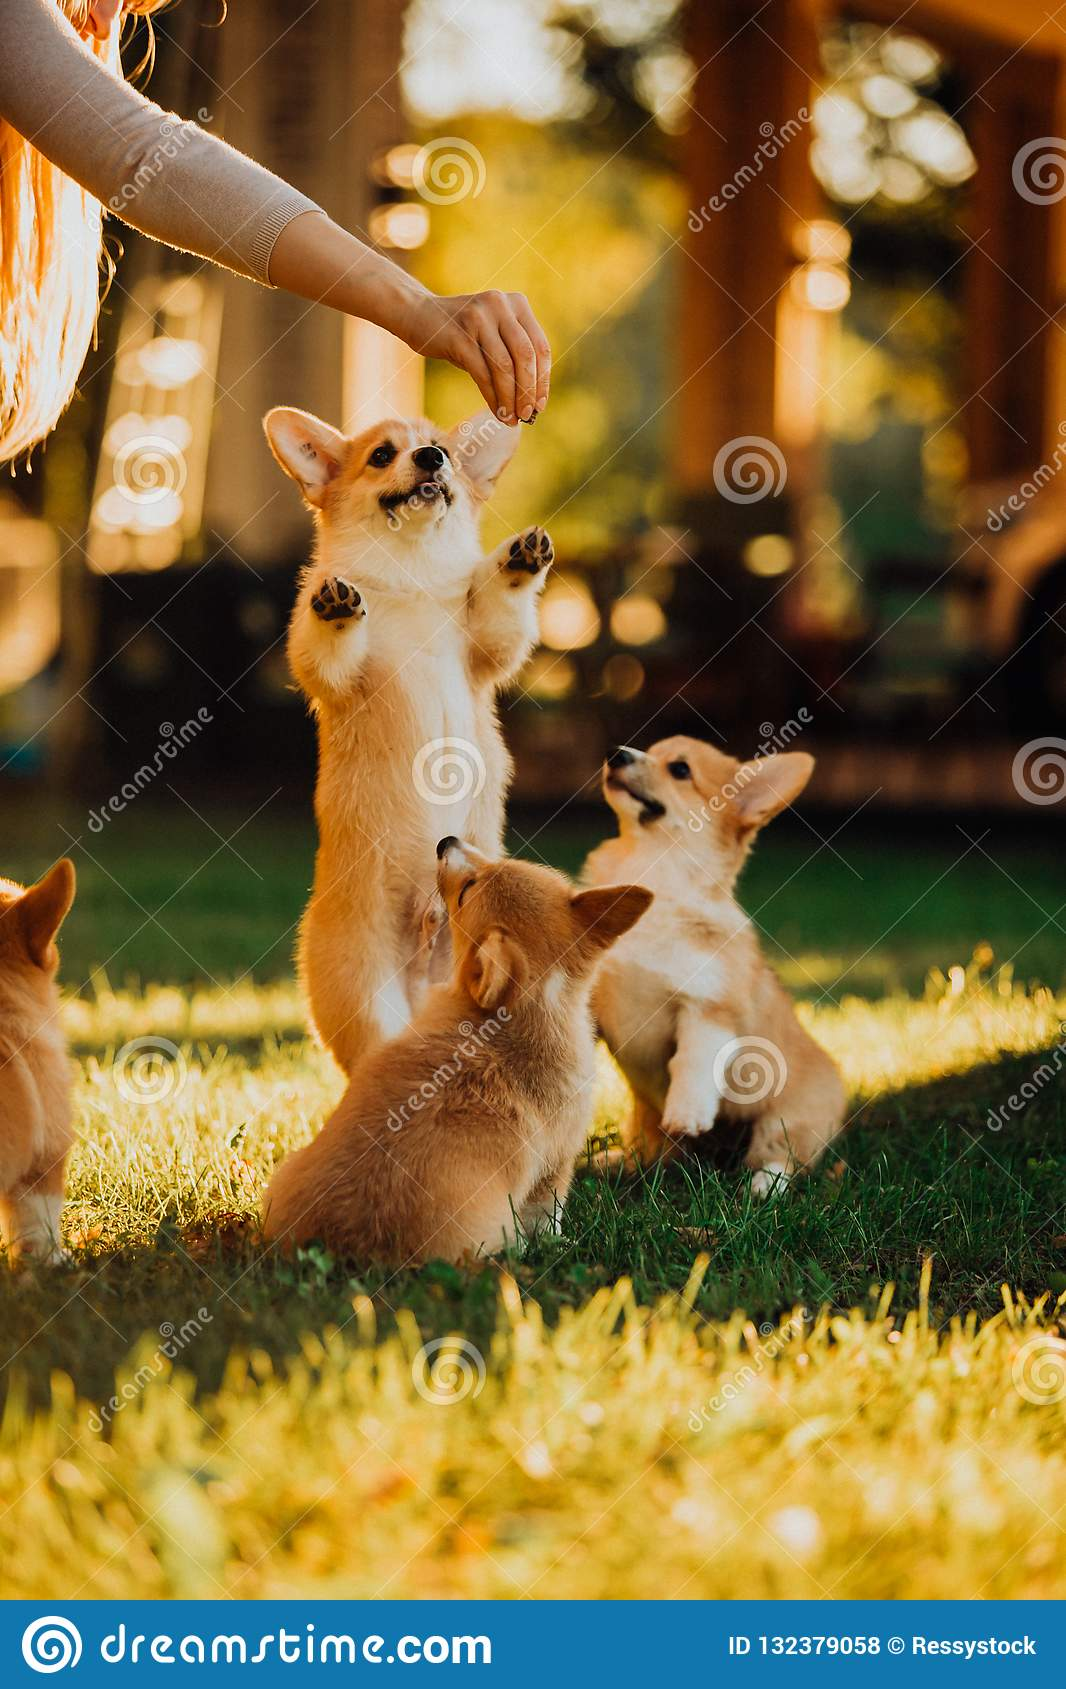 Many cute puppys Welsh corgi dog play on grass in sunshine. green park on background